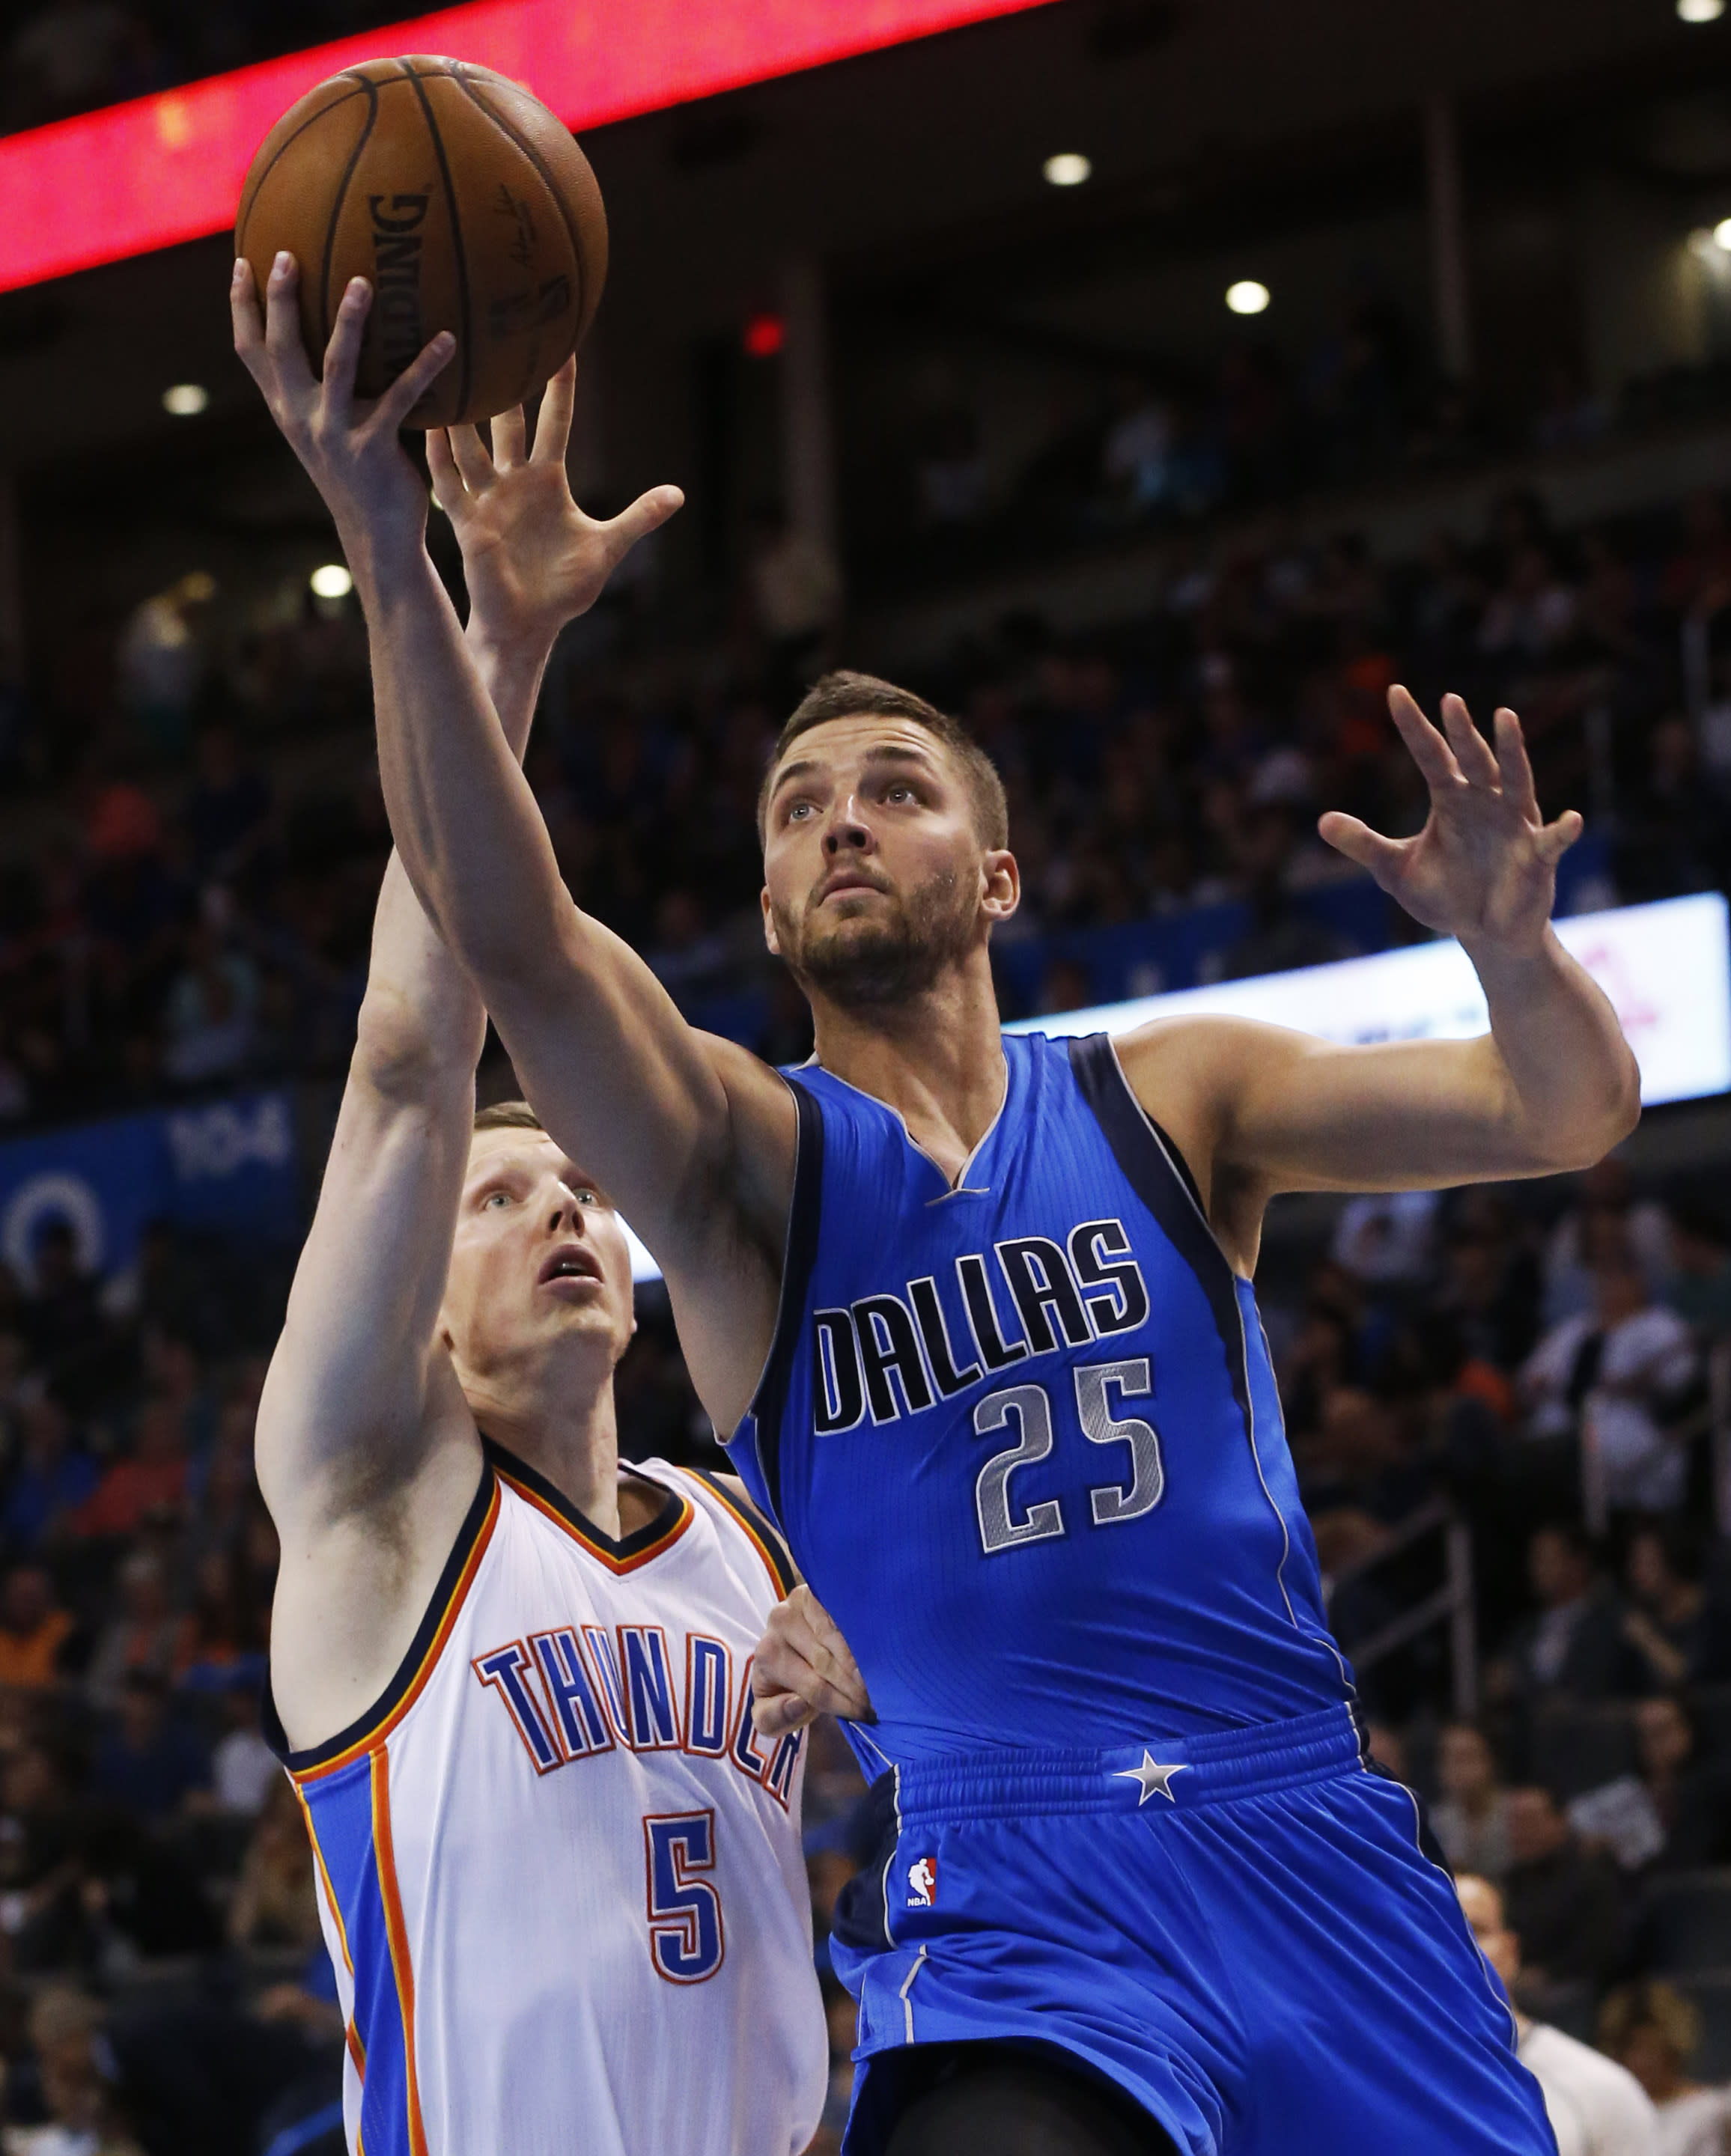 Mavs beat Thunder 135-131 despite Westbrook triple-double